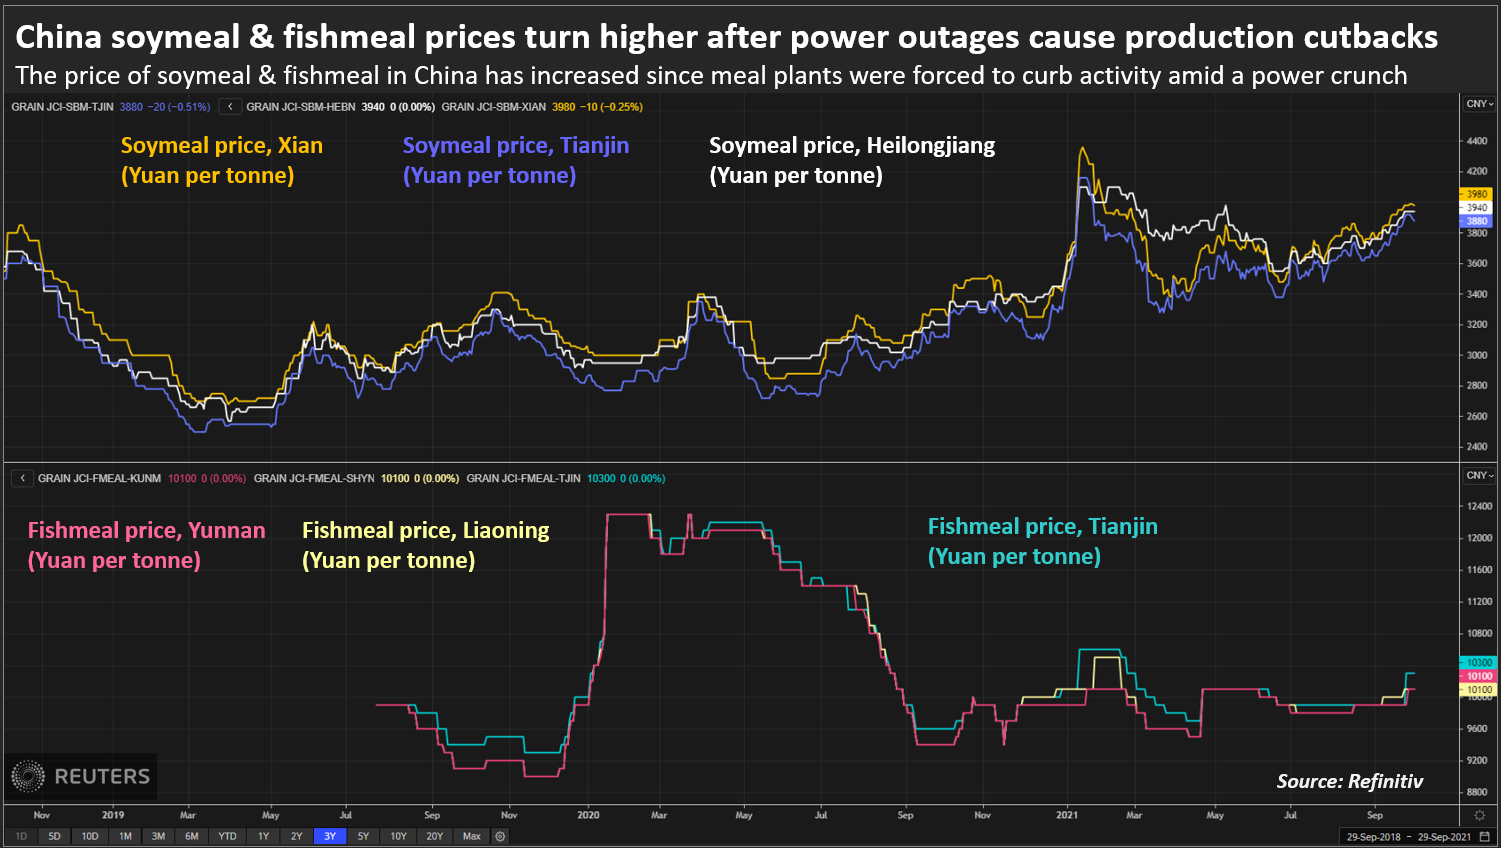 China soymeal & fishmeal prices turn higher after power outages cause production cutbacks